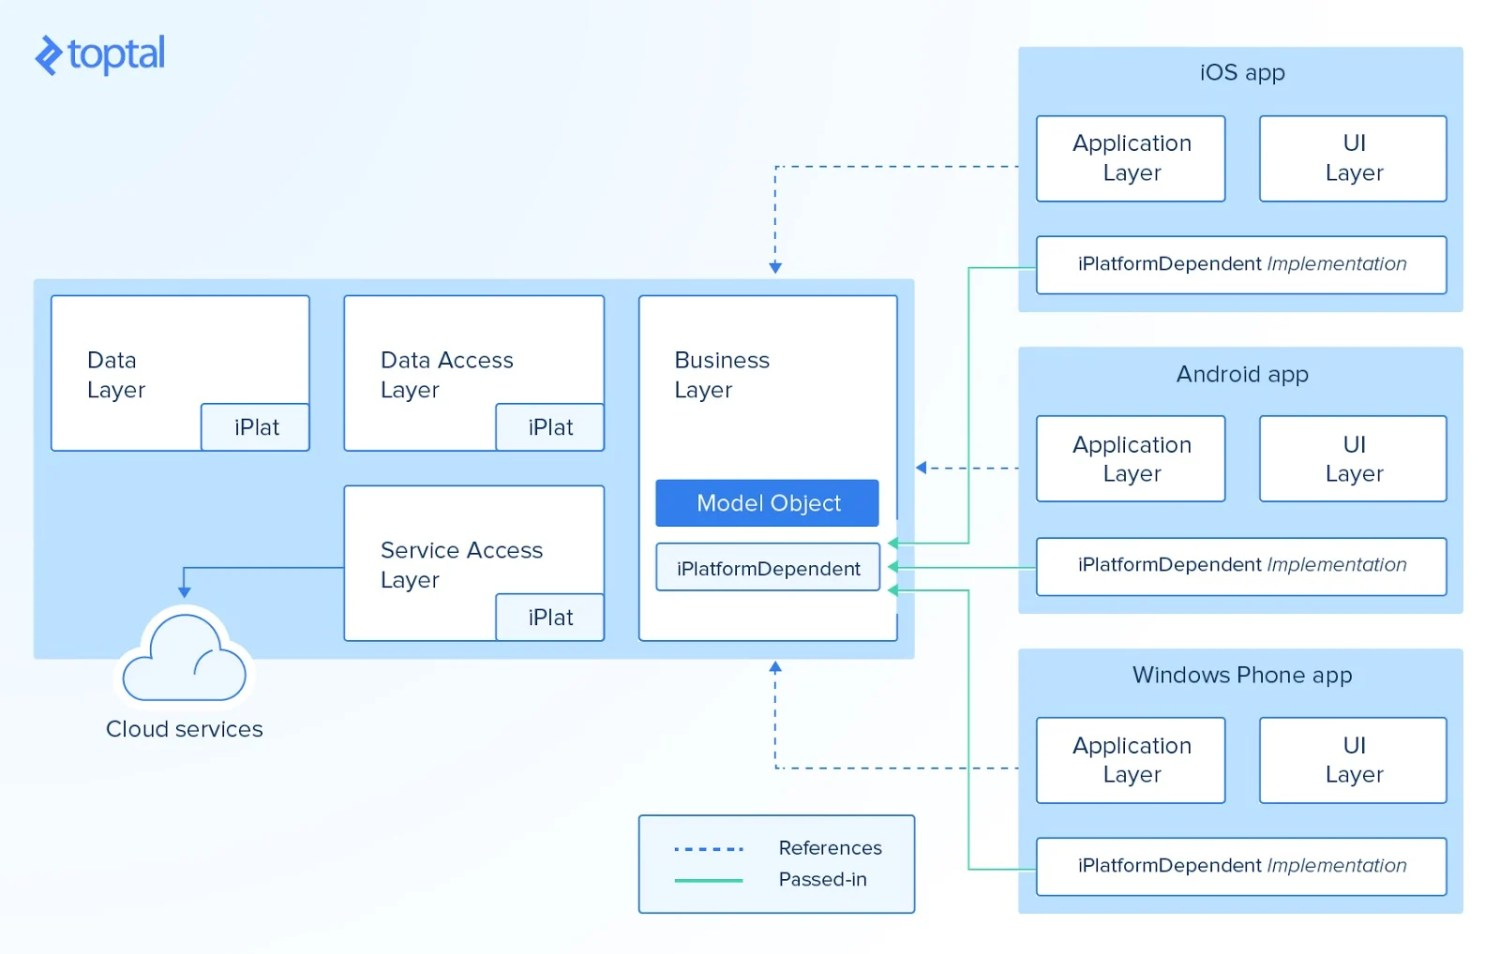 Xamarin's connections and limitations